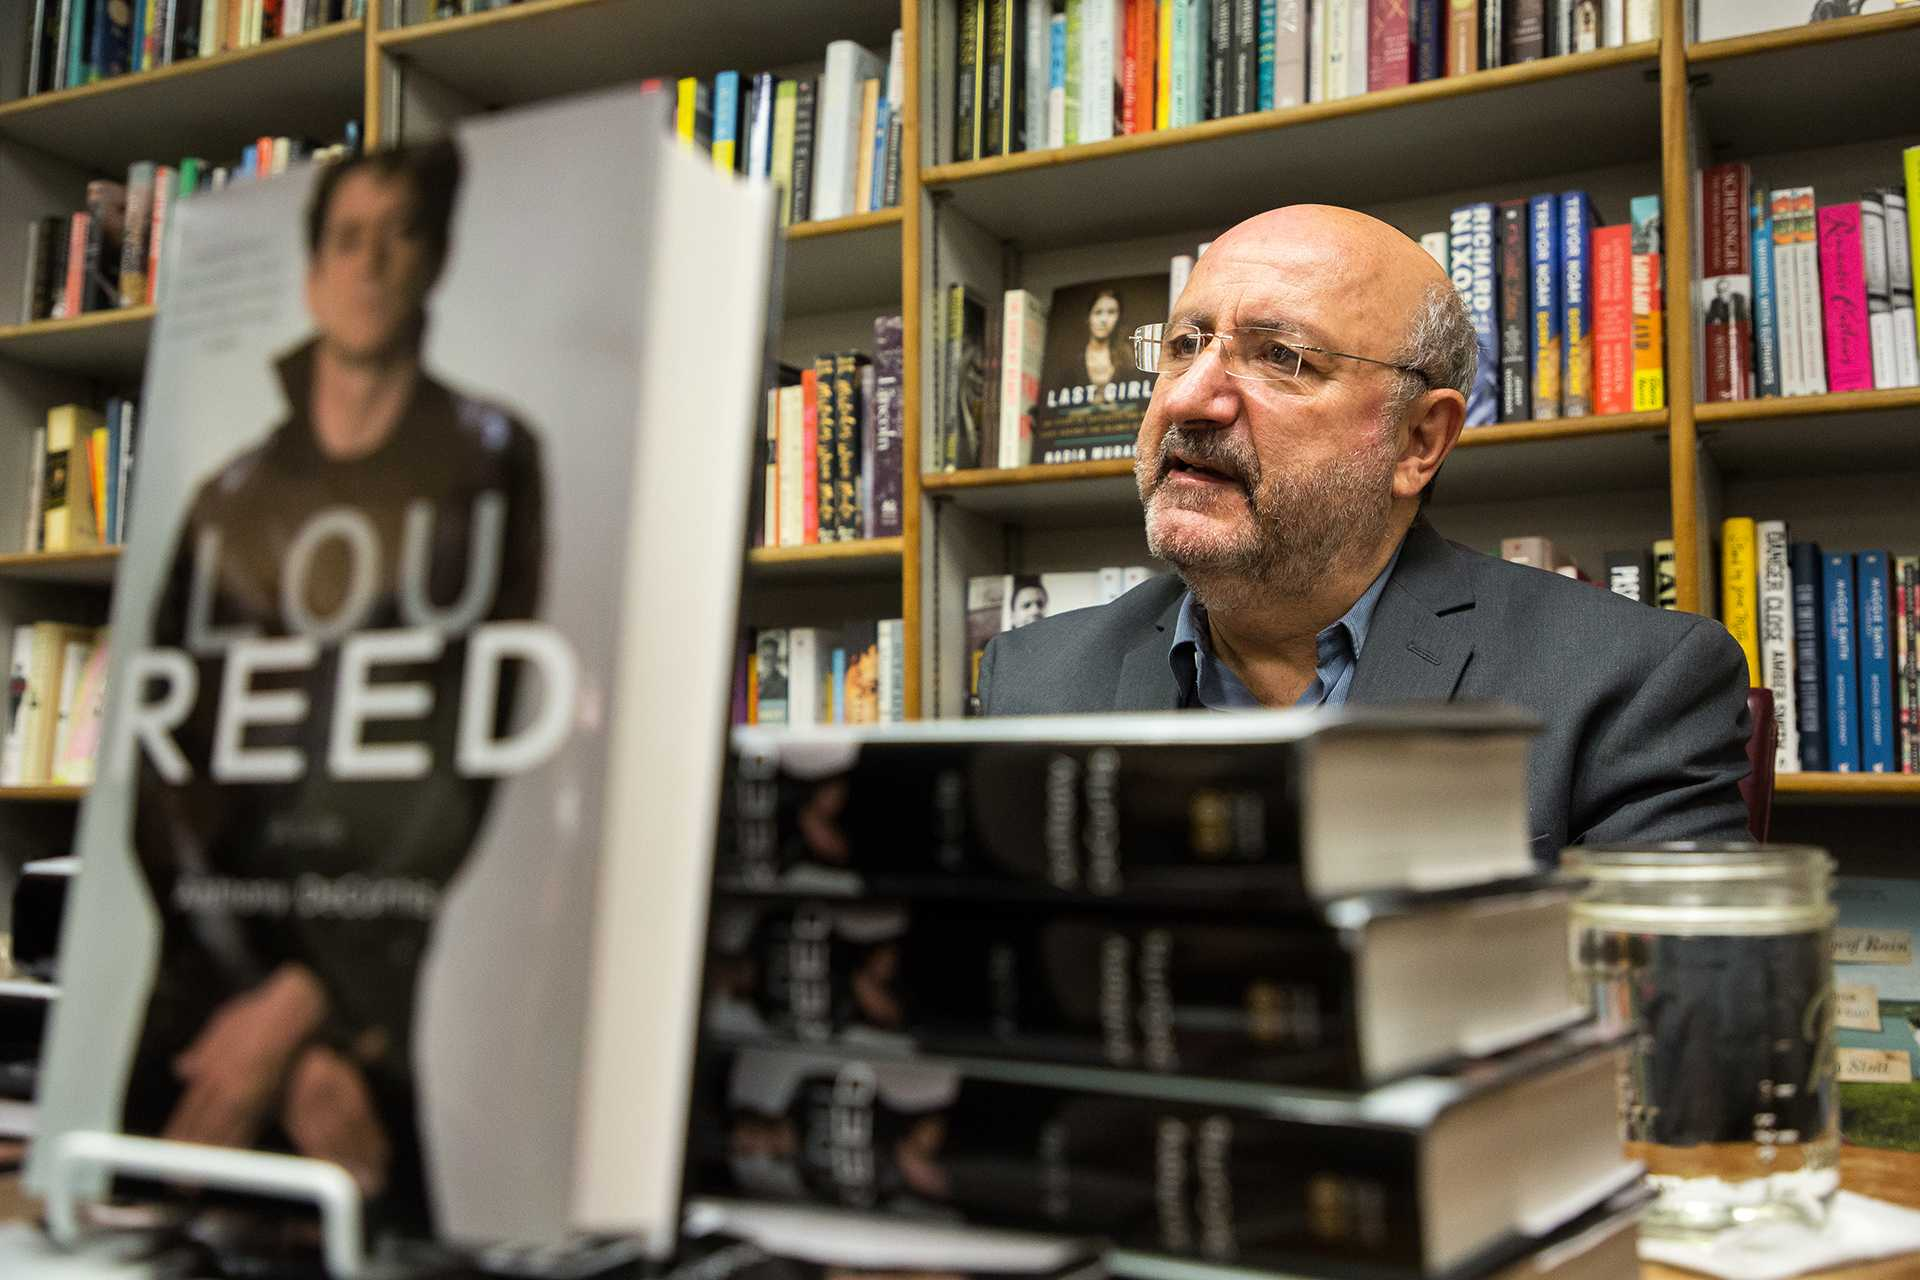 """Anthony Decurtis speaks to patrons at Prairie Lights bookstore after giving a reading from and answering questions about his new biography titled """"Lou Reed: A Life"""" on Monday, Nov. 13, 2017. Lou Reed fronted the band """"The Velvet Underground"""" and was a hugely influential musician who helped inspire alternative rock.  (David Harmantas/The Daily Iowan)"""